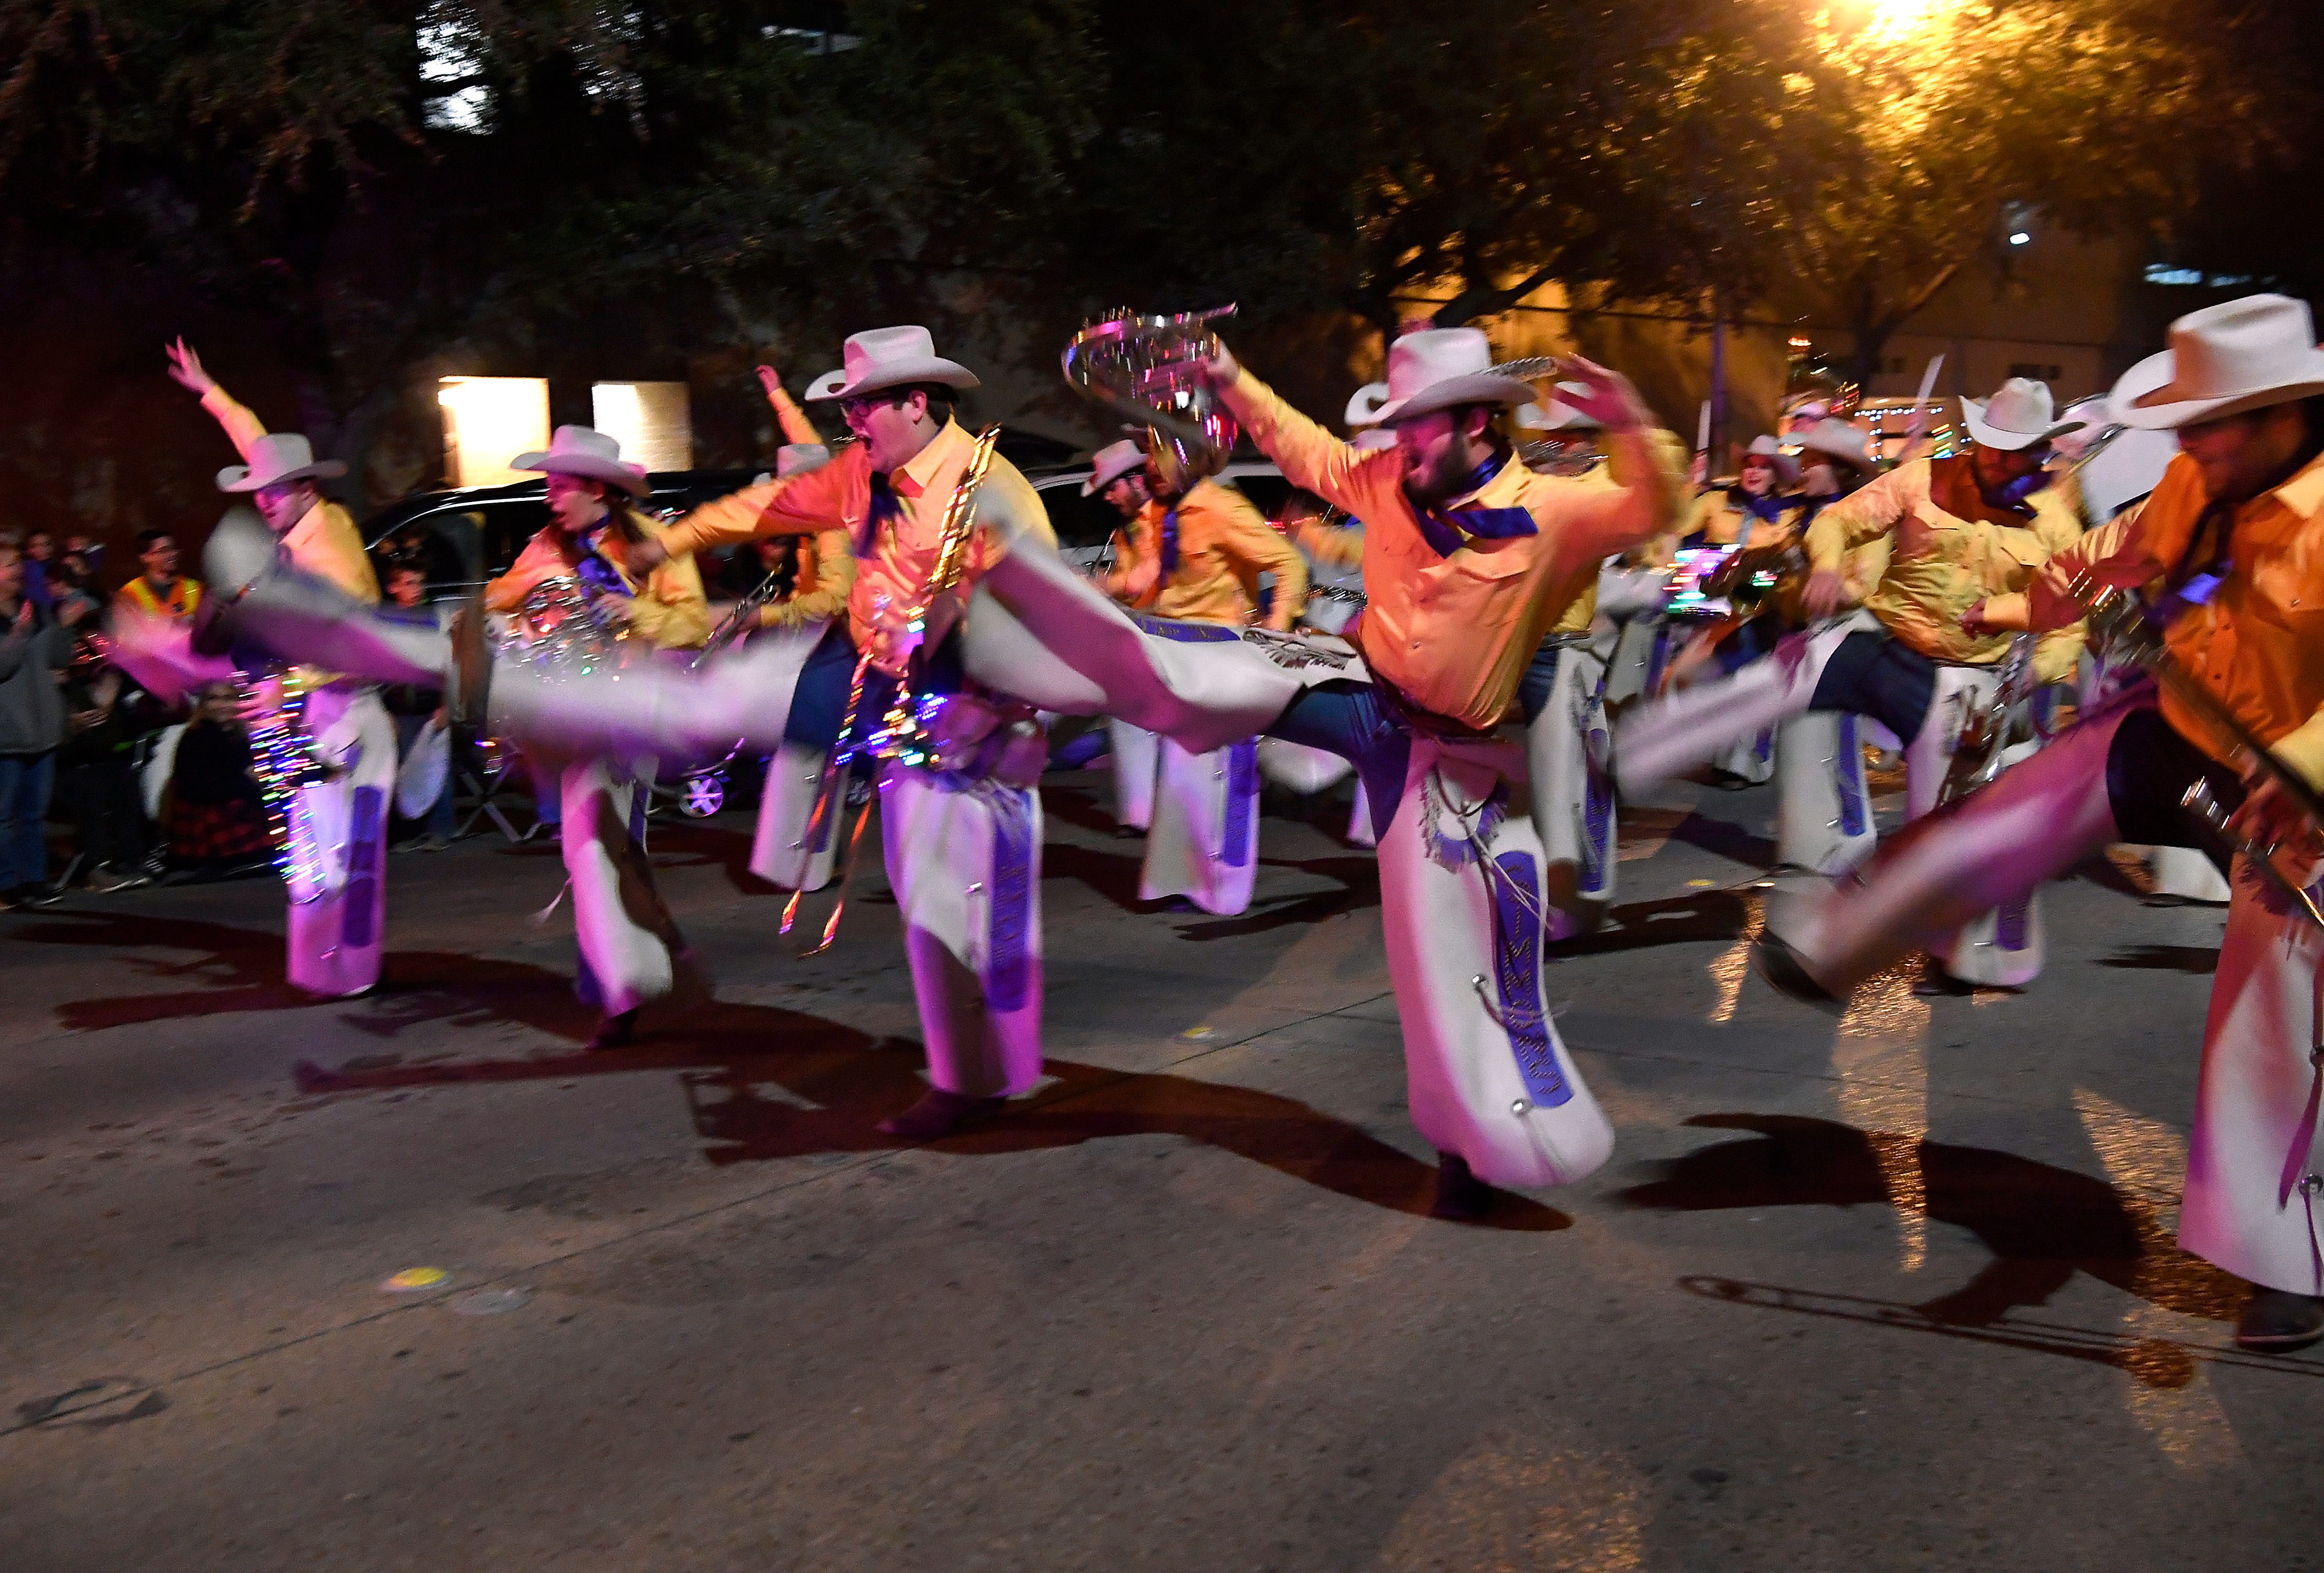 """In this file photo, the Hardin-Simmons University Cowboy Band performs their signature """"Cow Step"""" during the City Sidewalks Christmas Lights Parade on Nov. 27. The band is enjoying a wave of new membership under Director Bill Harden, HSU President Eric Bruntmyer said."""